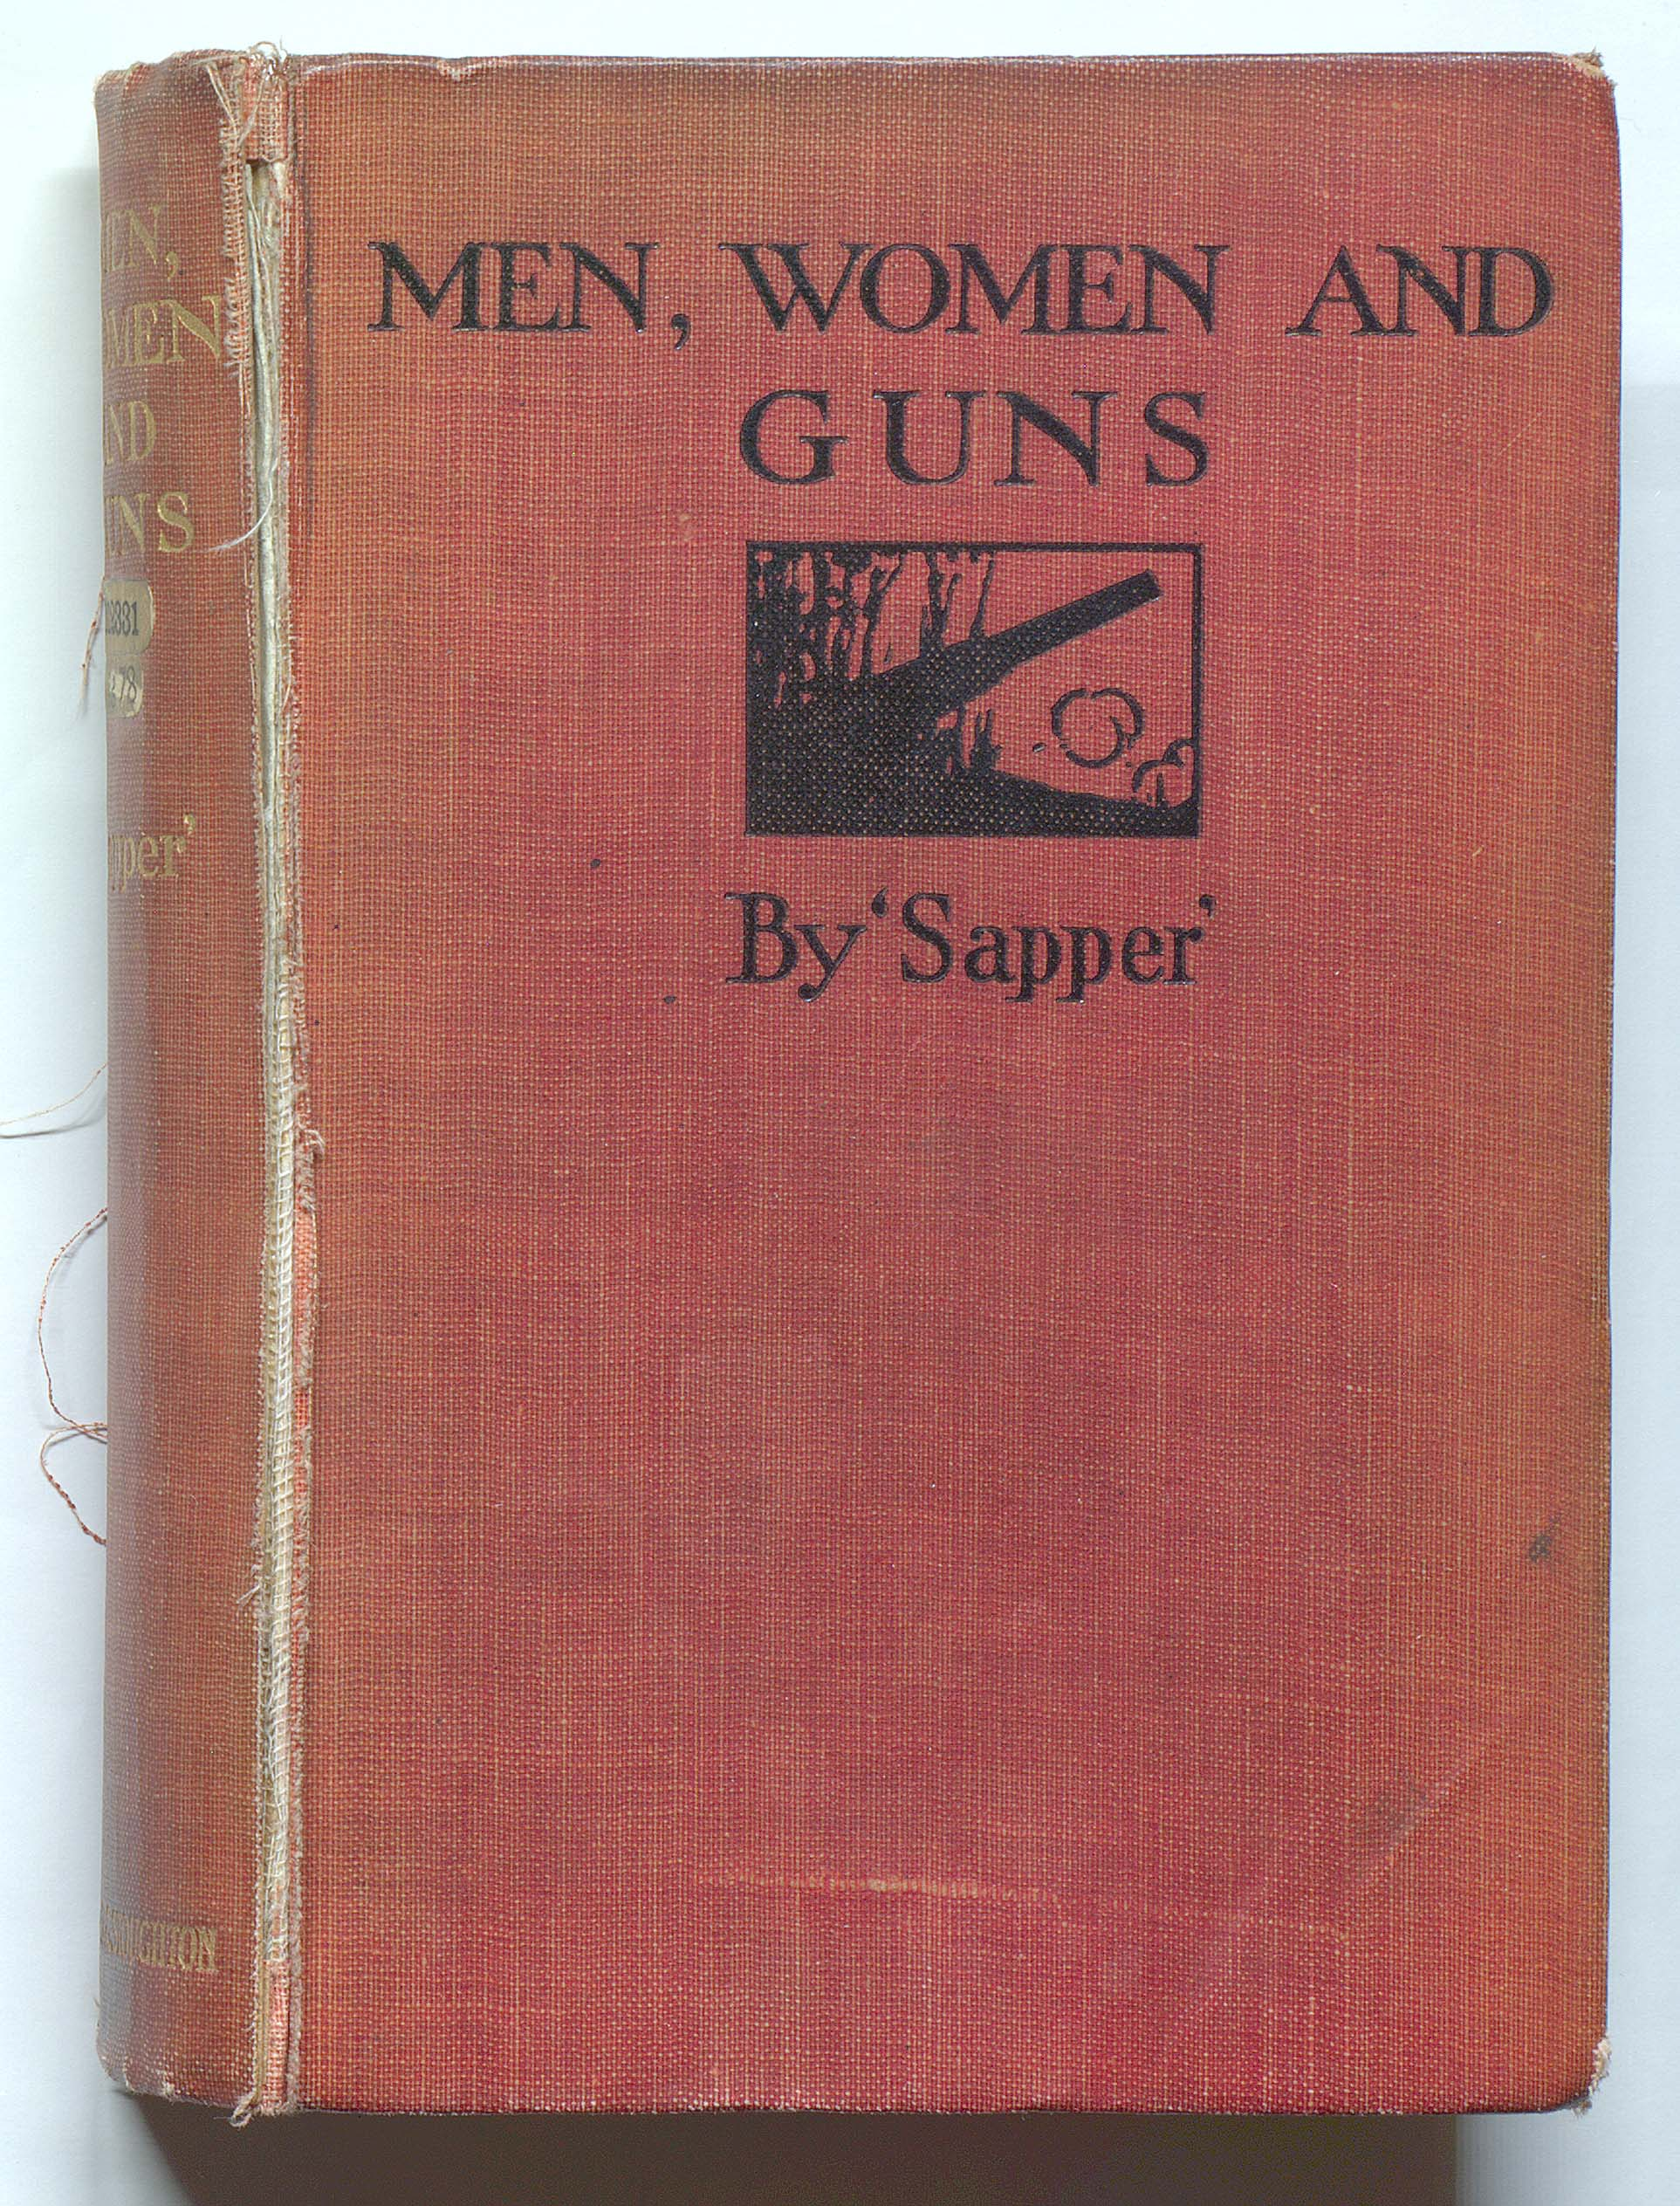 Men, Women, and Guns